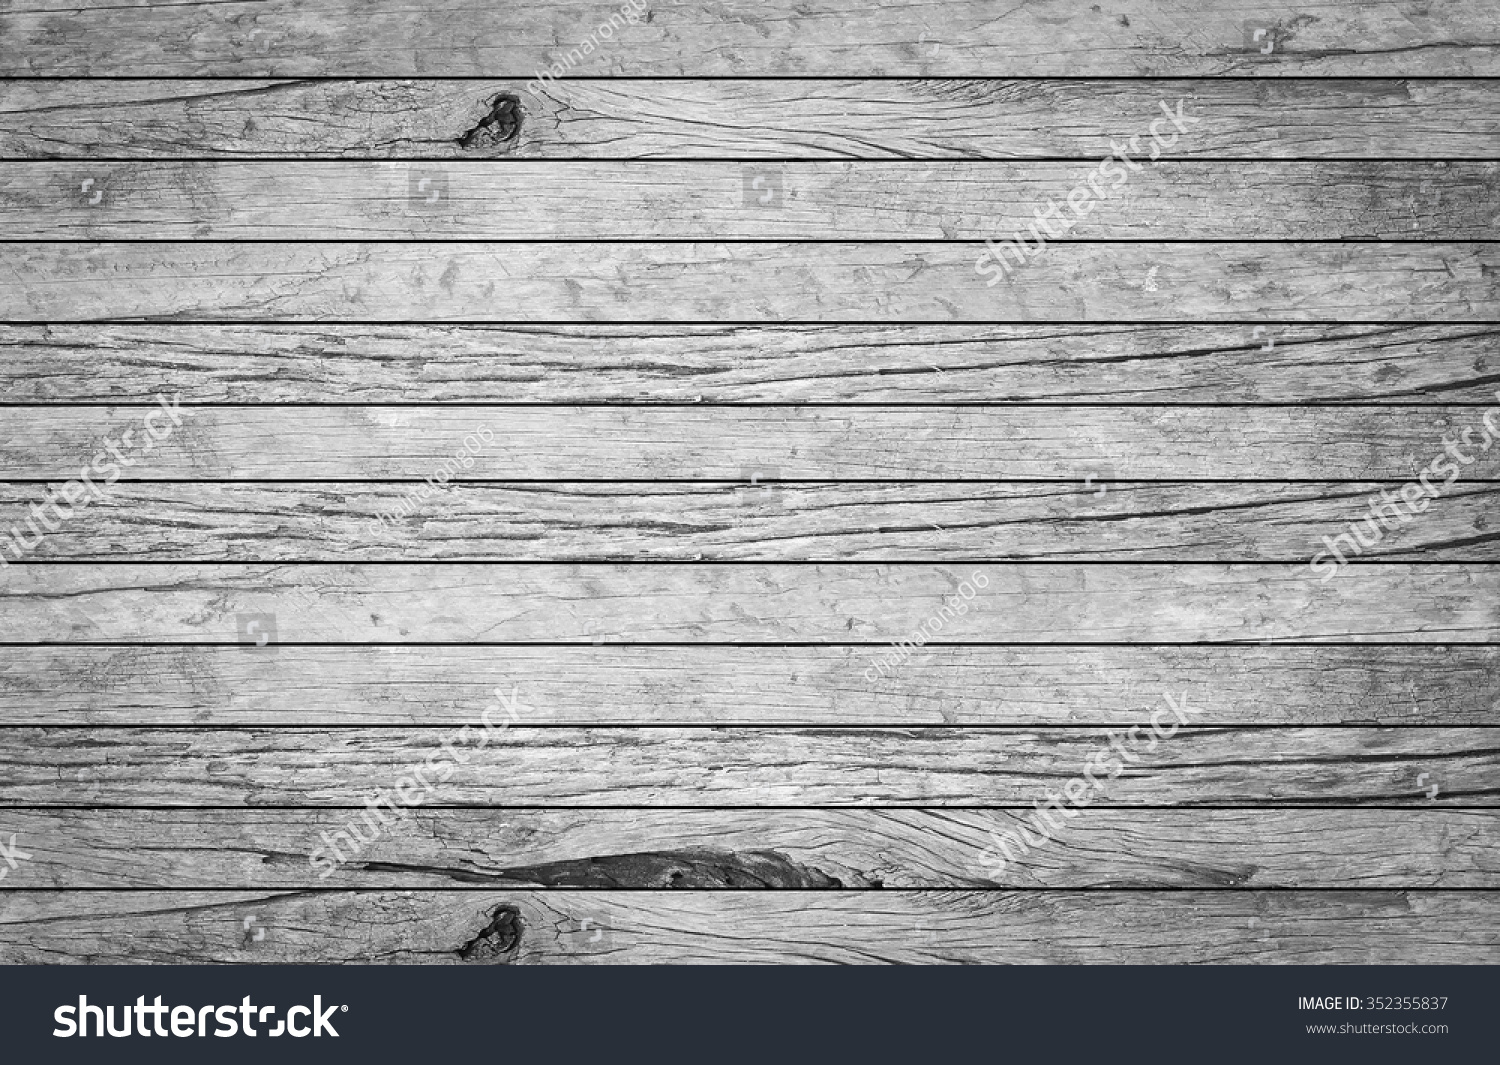 Very Impressive portraiture of aged grey and white wooden background texture:retro veneer panel  with #31363C color and 1500x1065 pixels